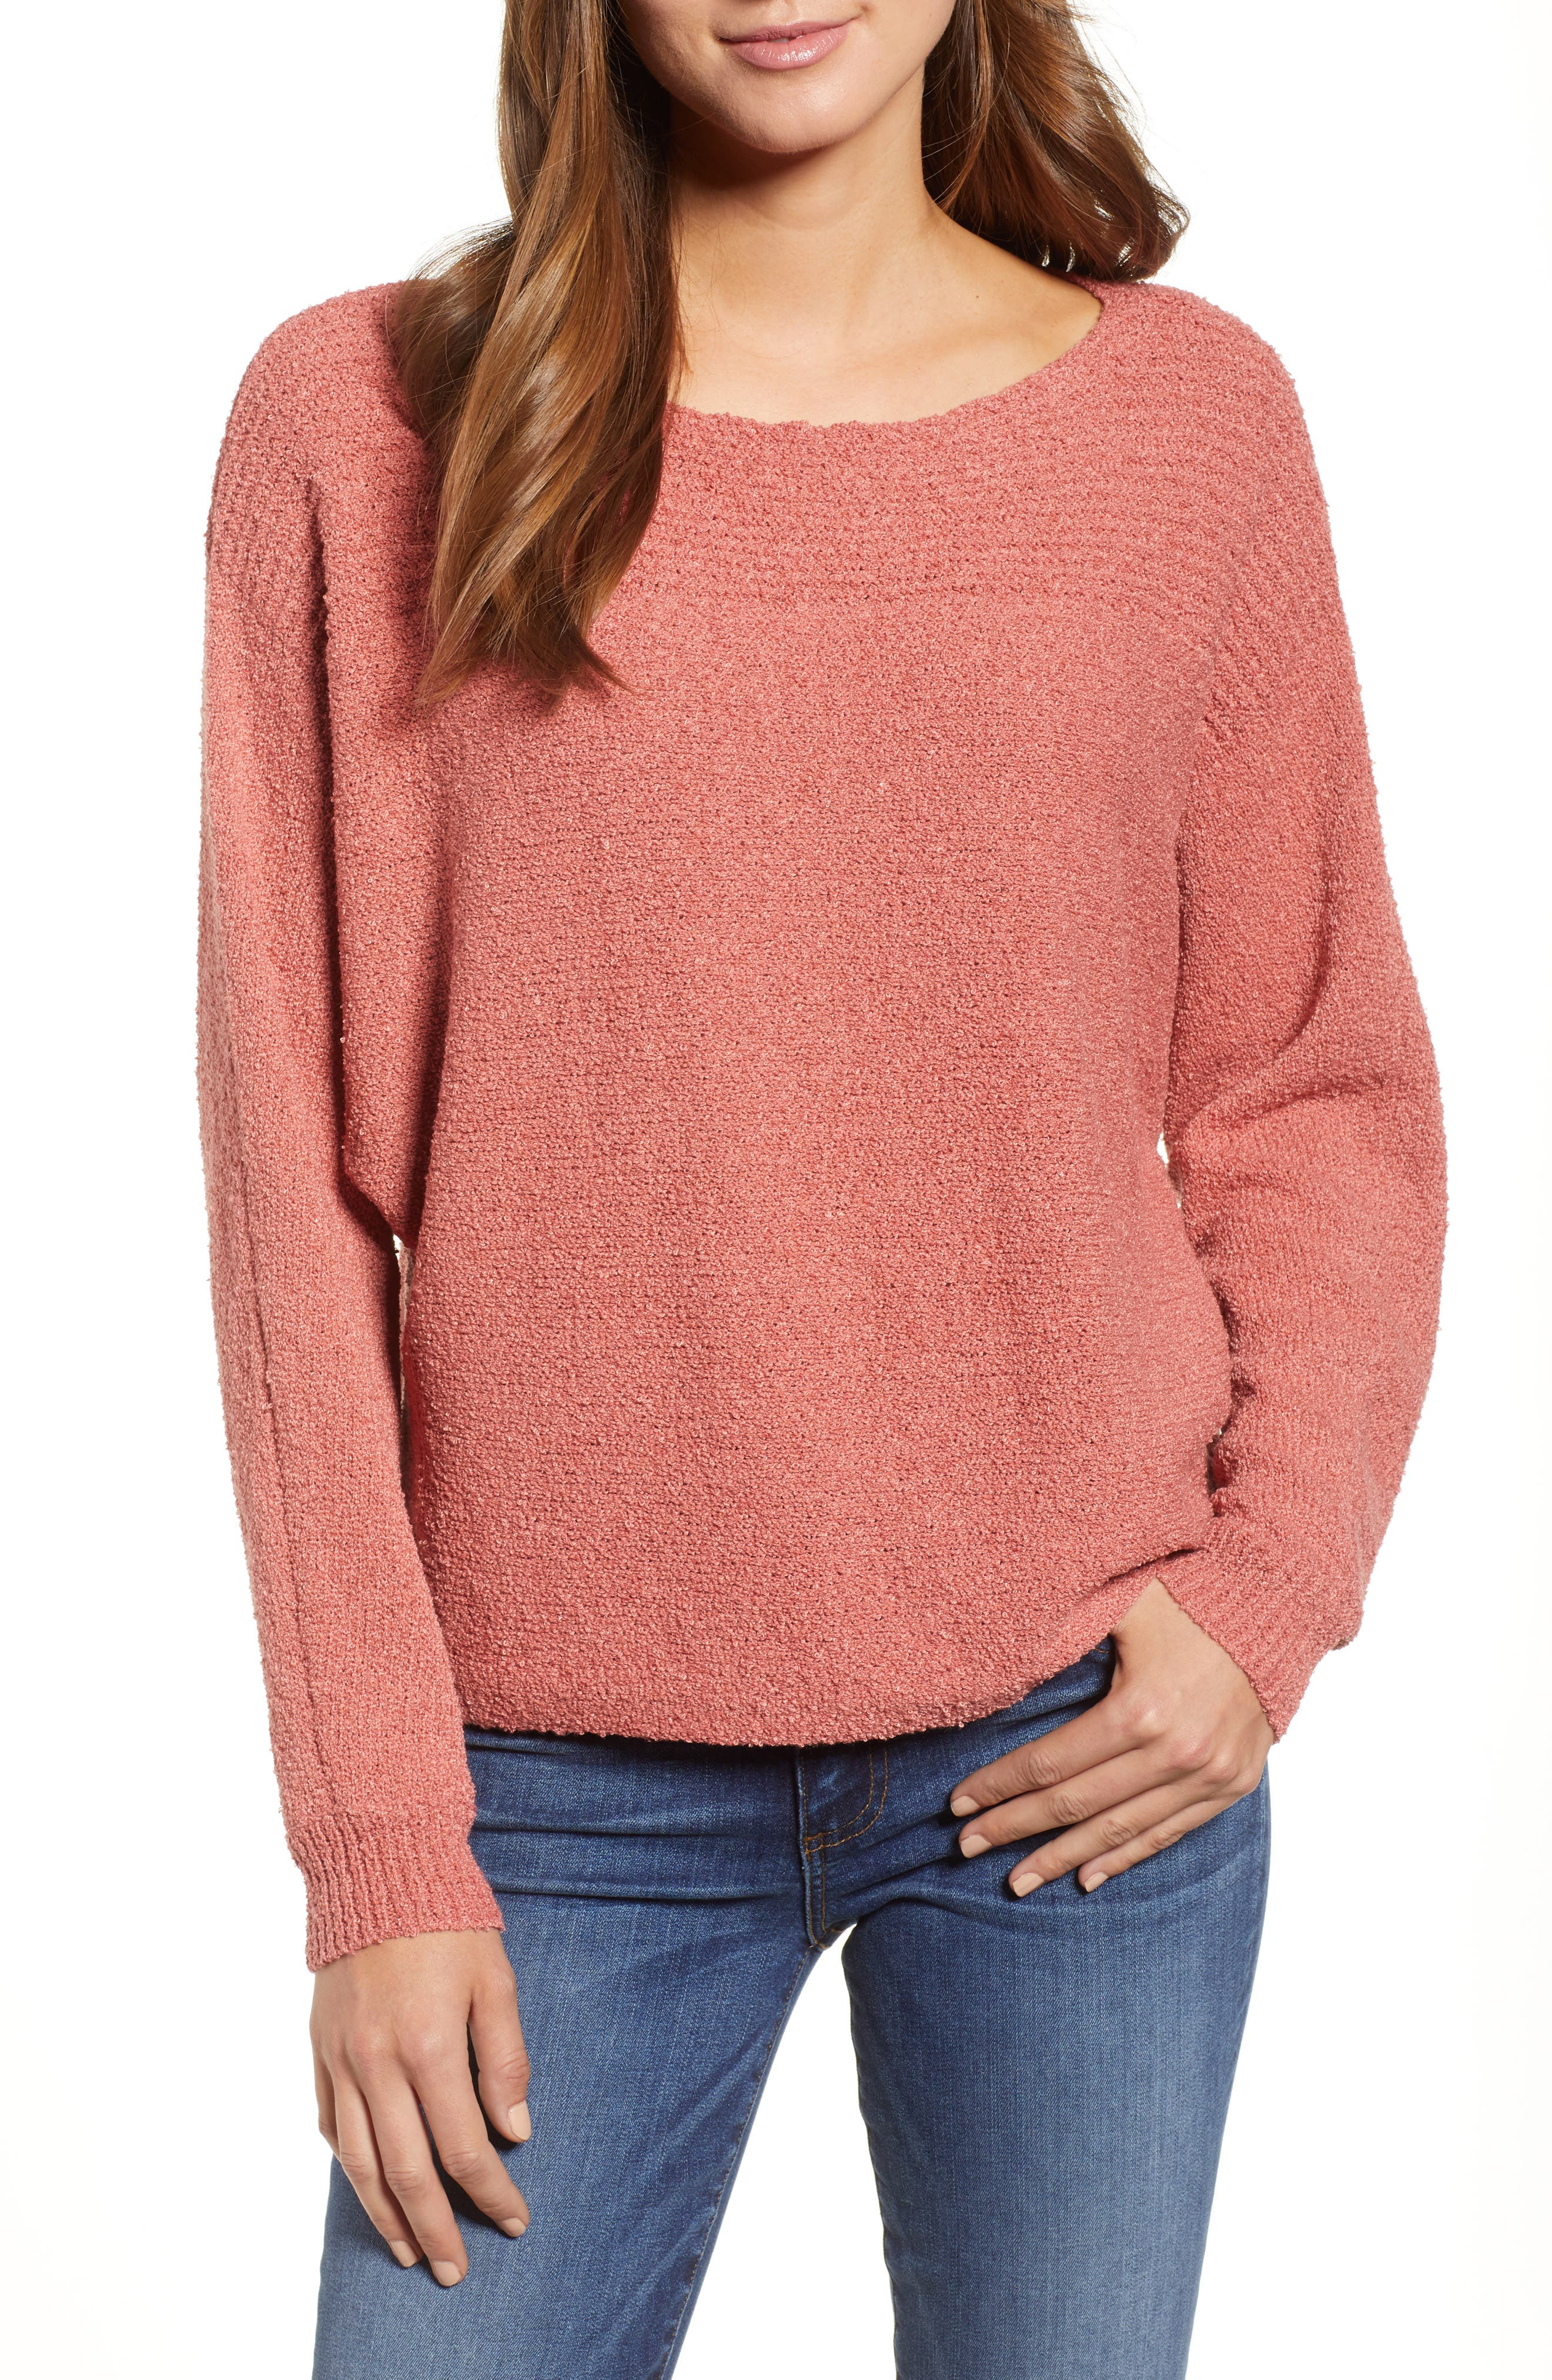 Calson<sup>®</sup> Dolman Sleeve Sweater,                             Main thumbnail 6, color,